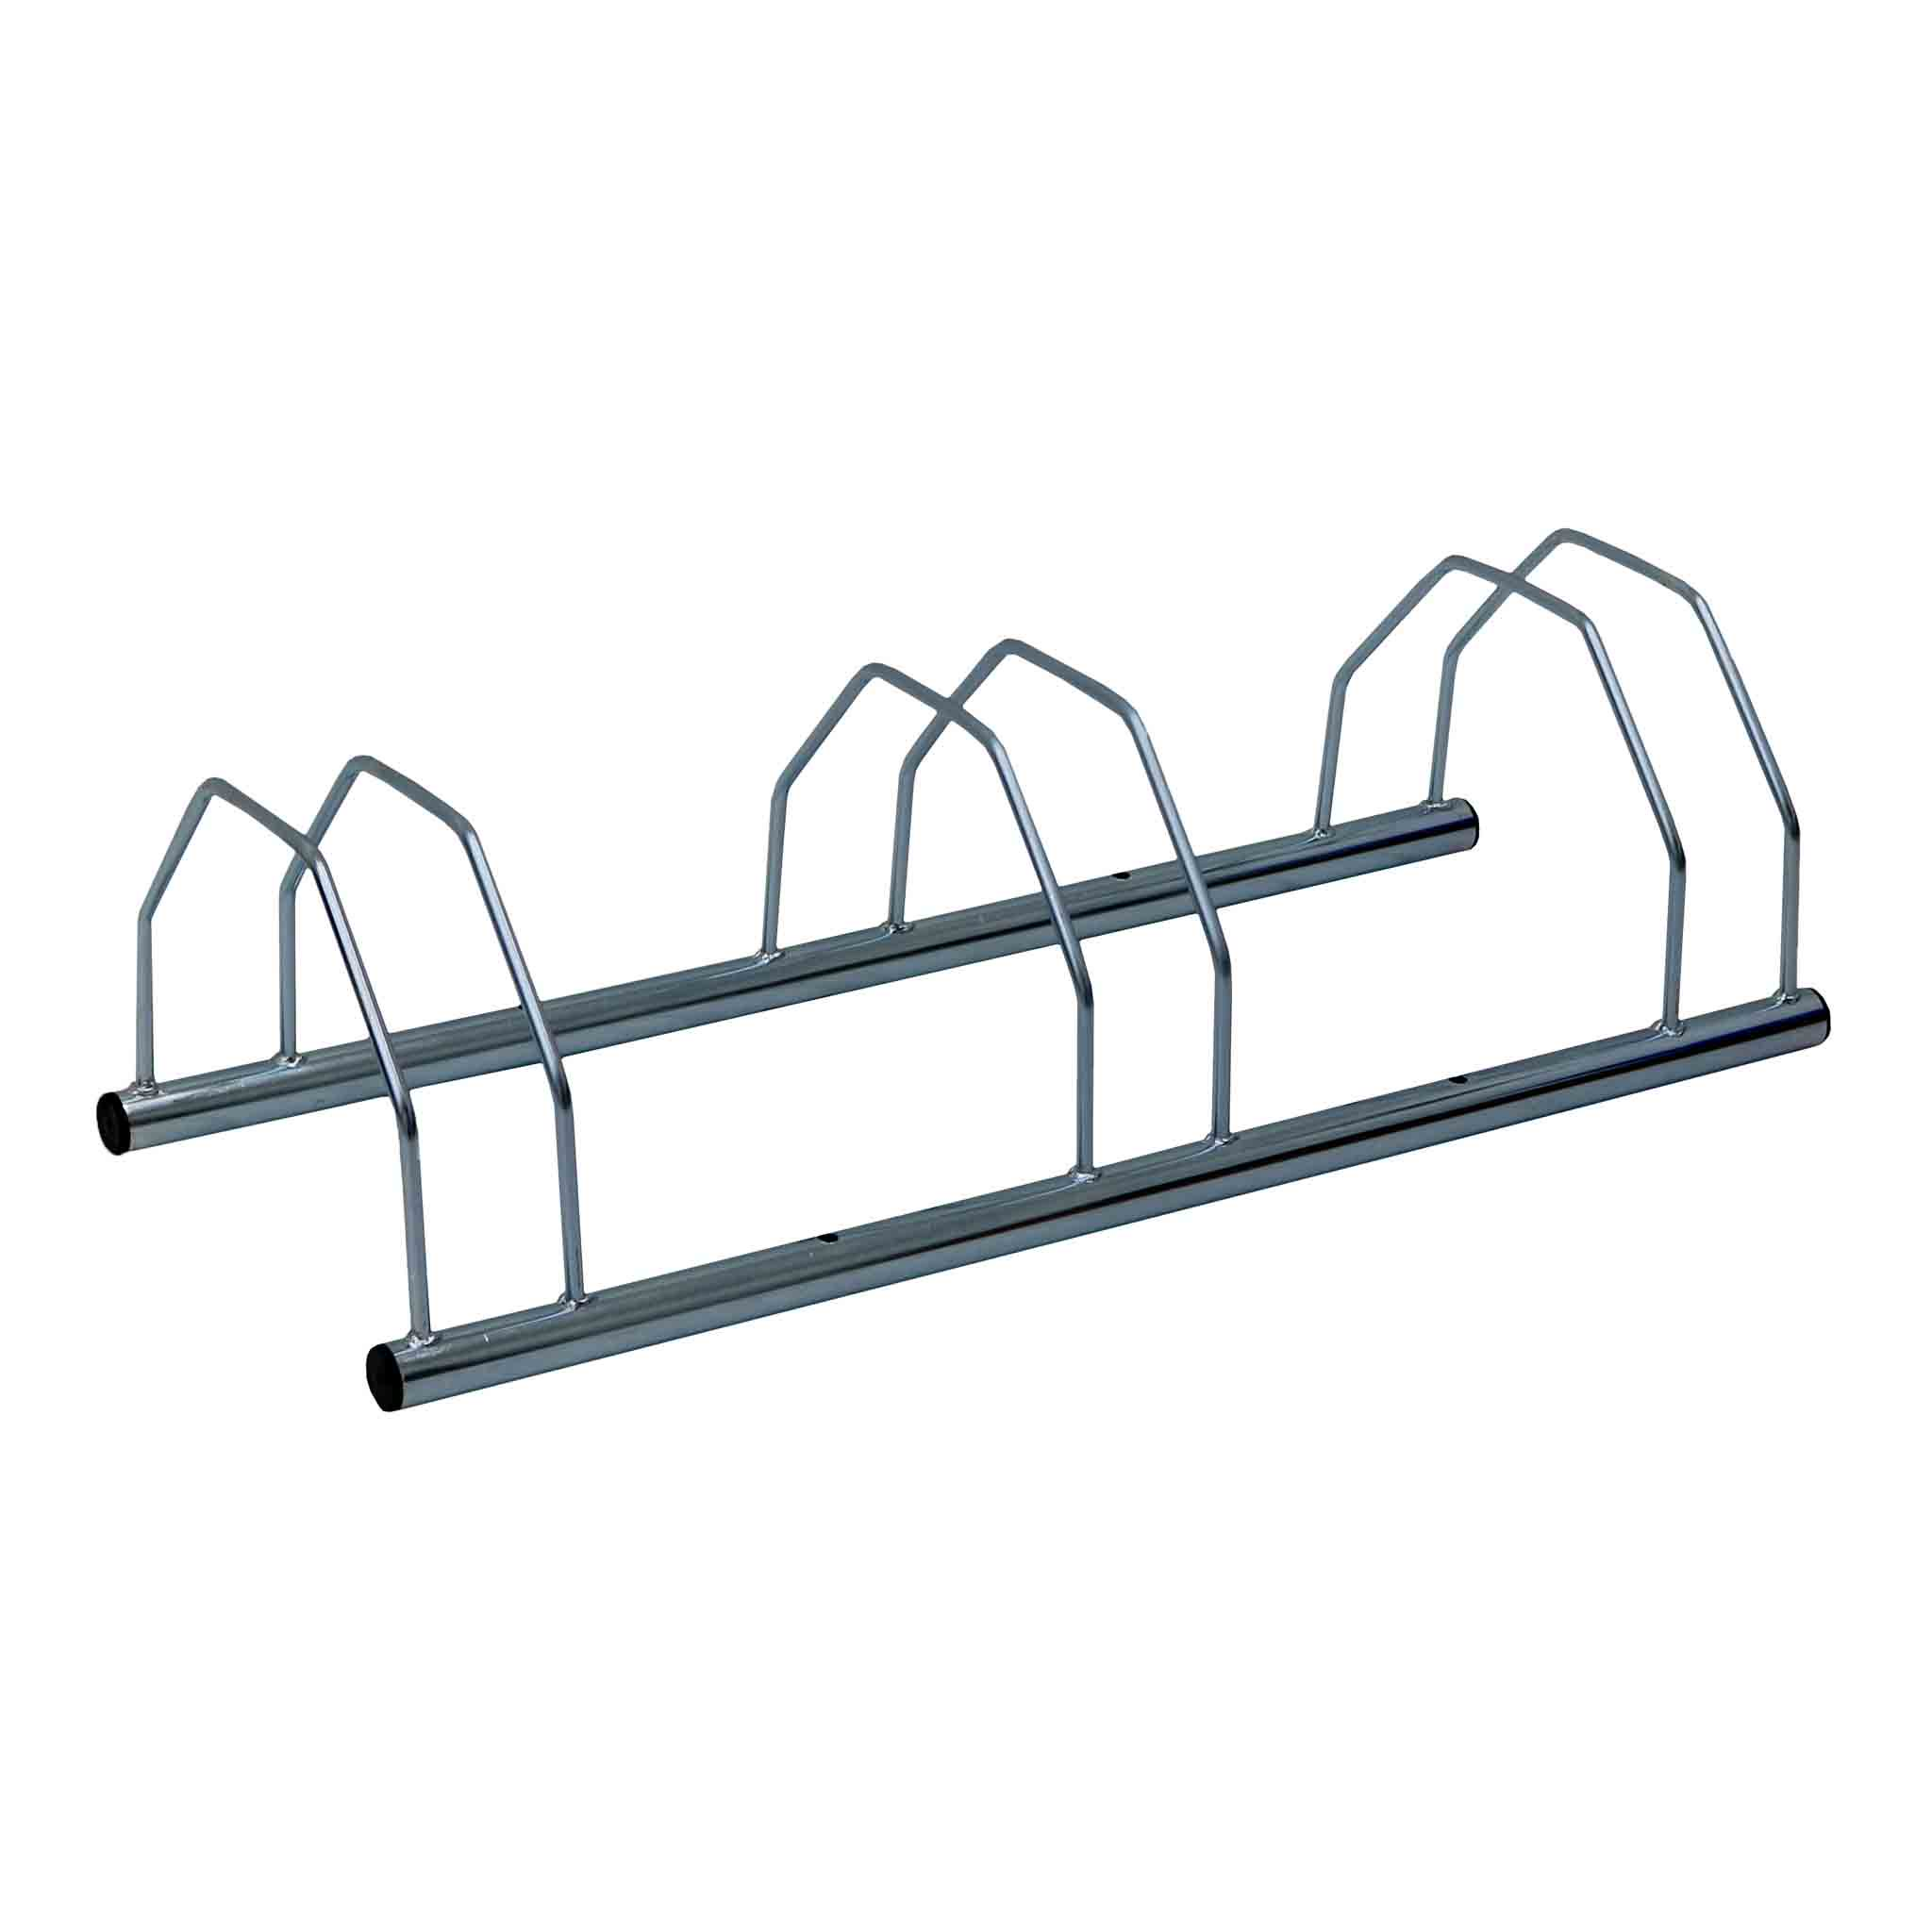 3 Three Slot Metal Heavy Duty Bike Stand Bicycle Storage Rack